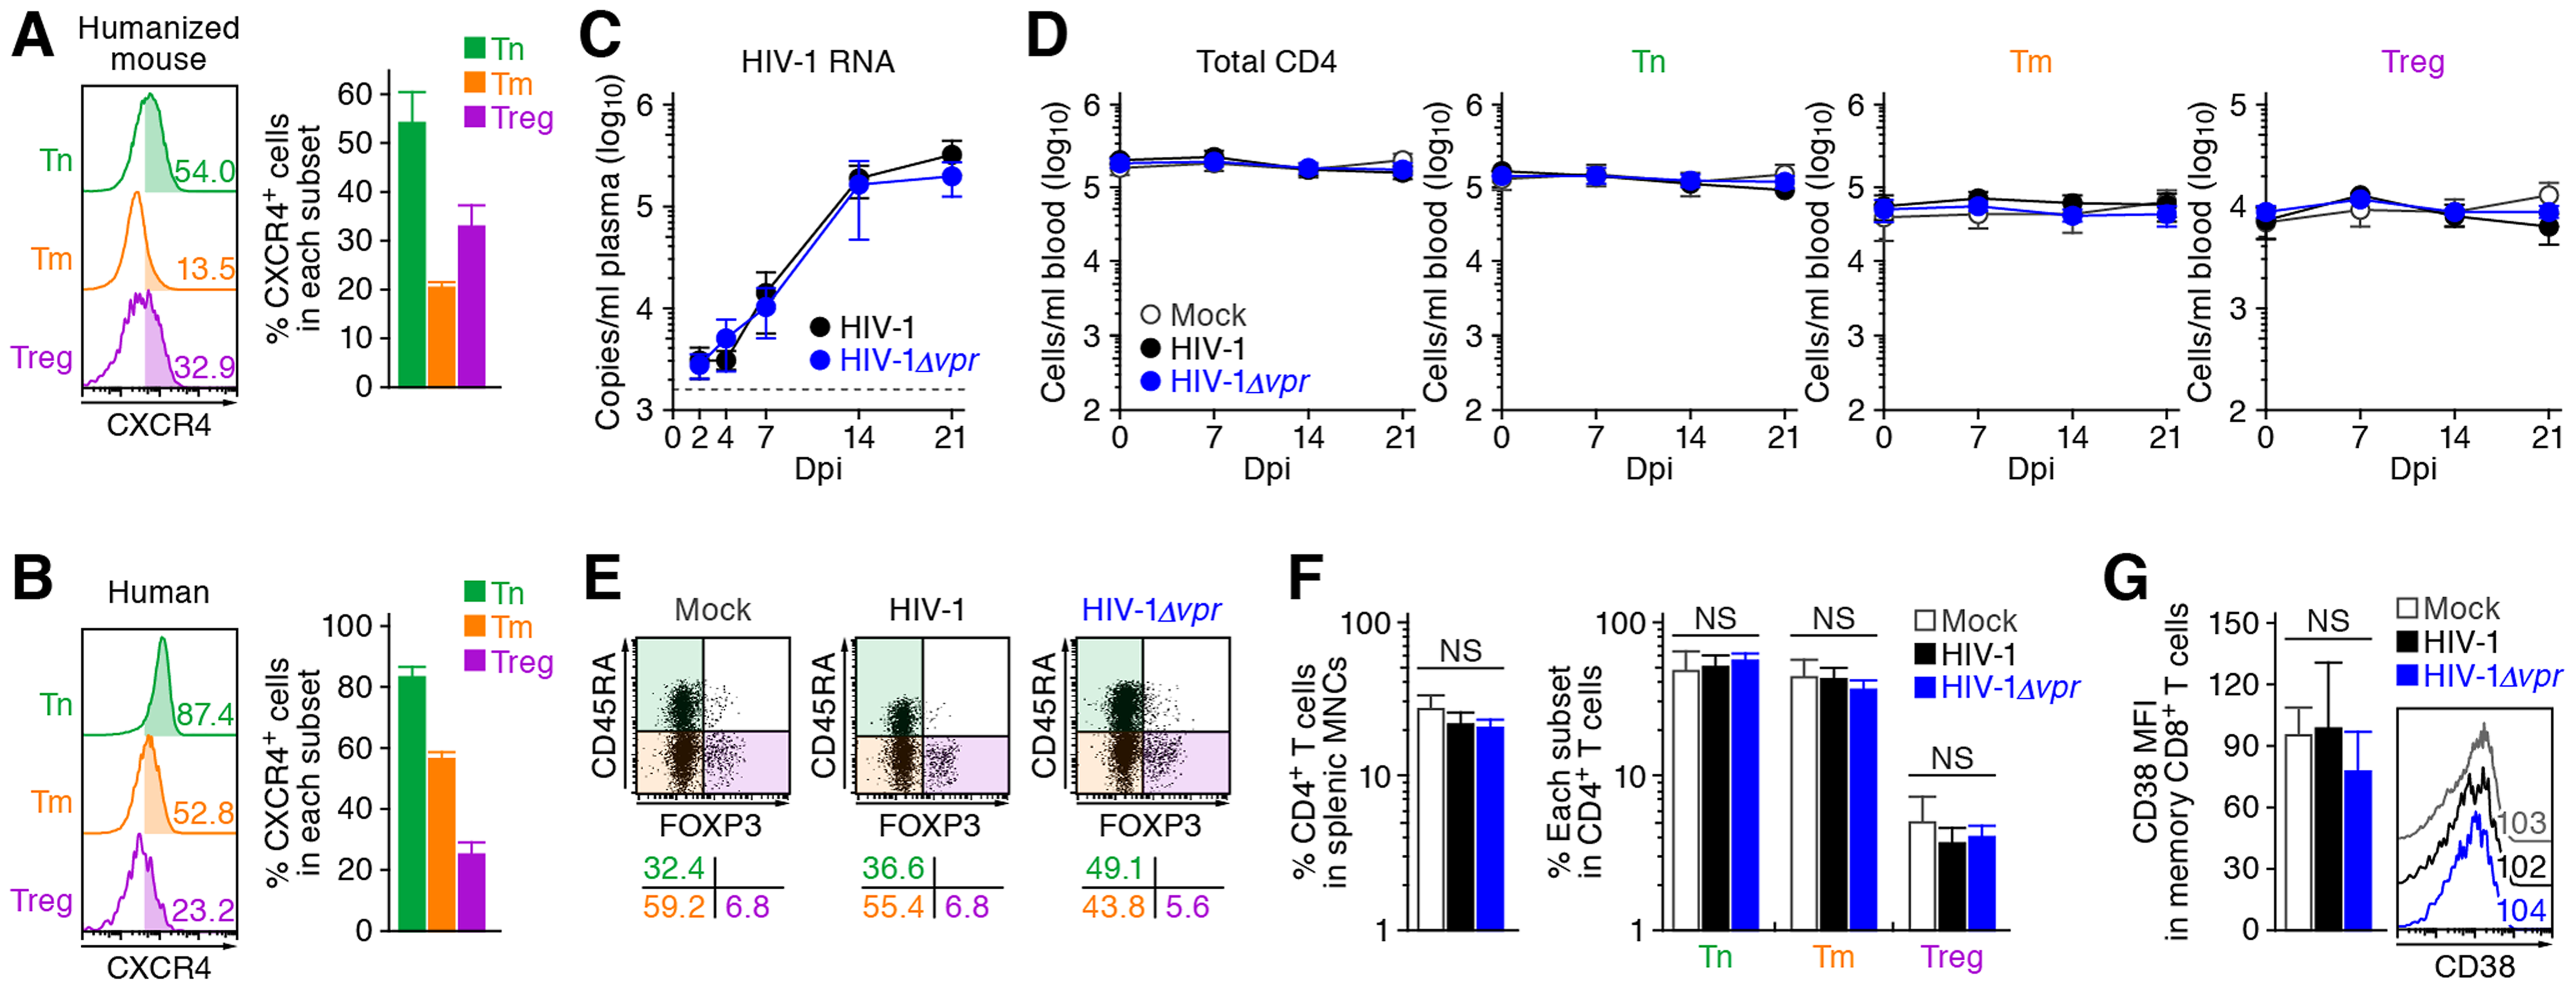 Dynamics of X4 WT and <i>vpr</i>-deficient HIV-1 infection in humanized mice.